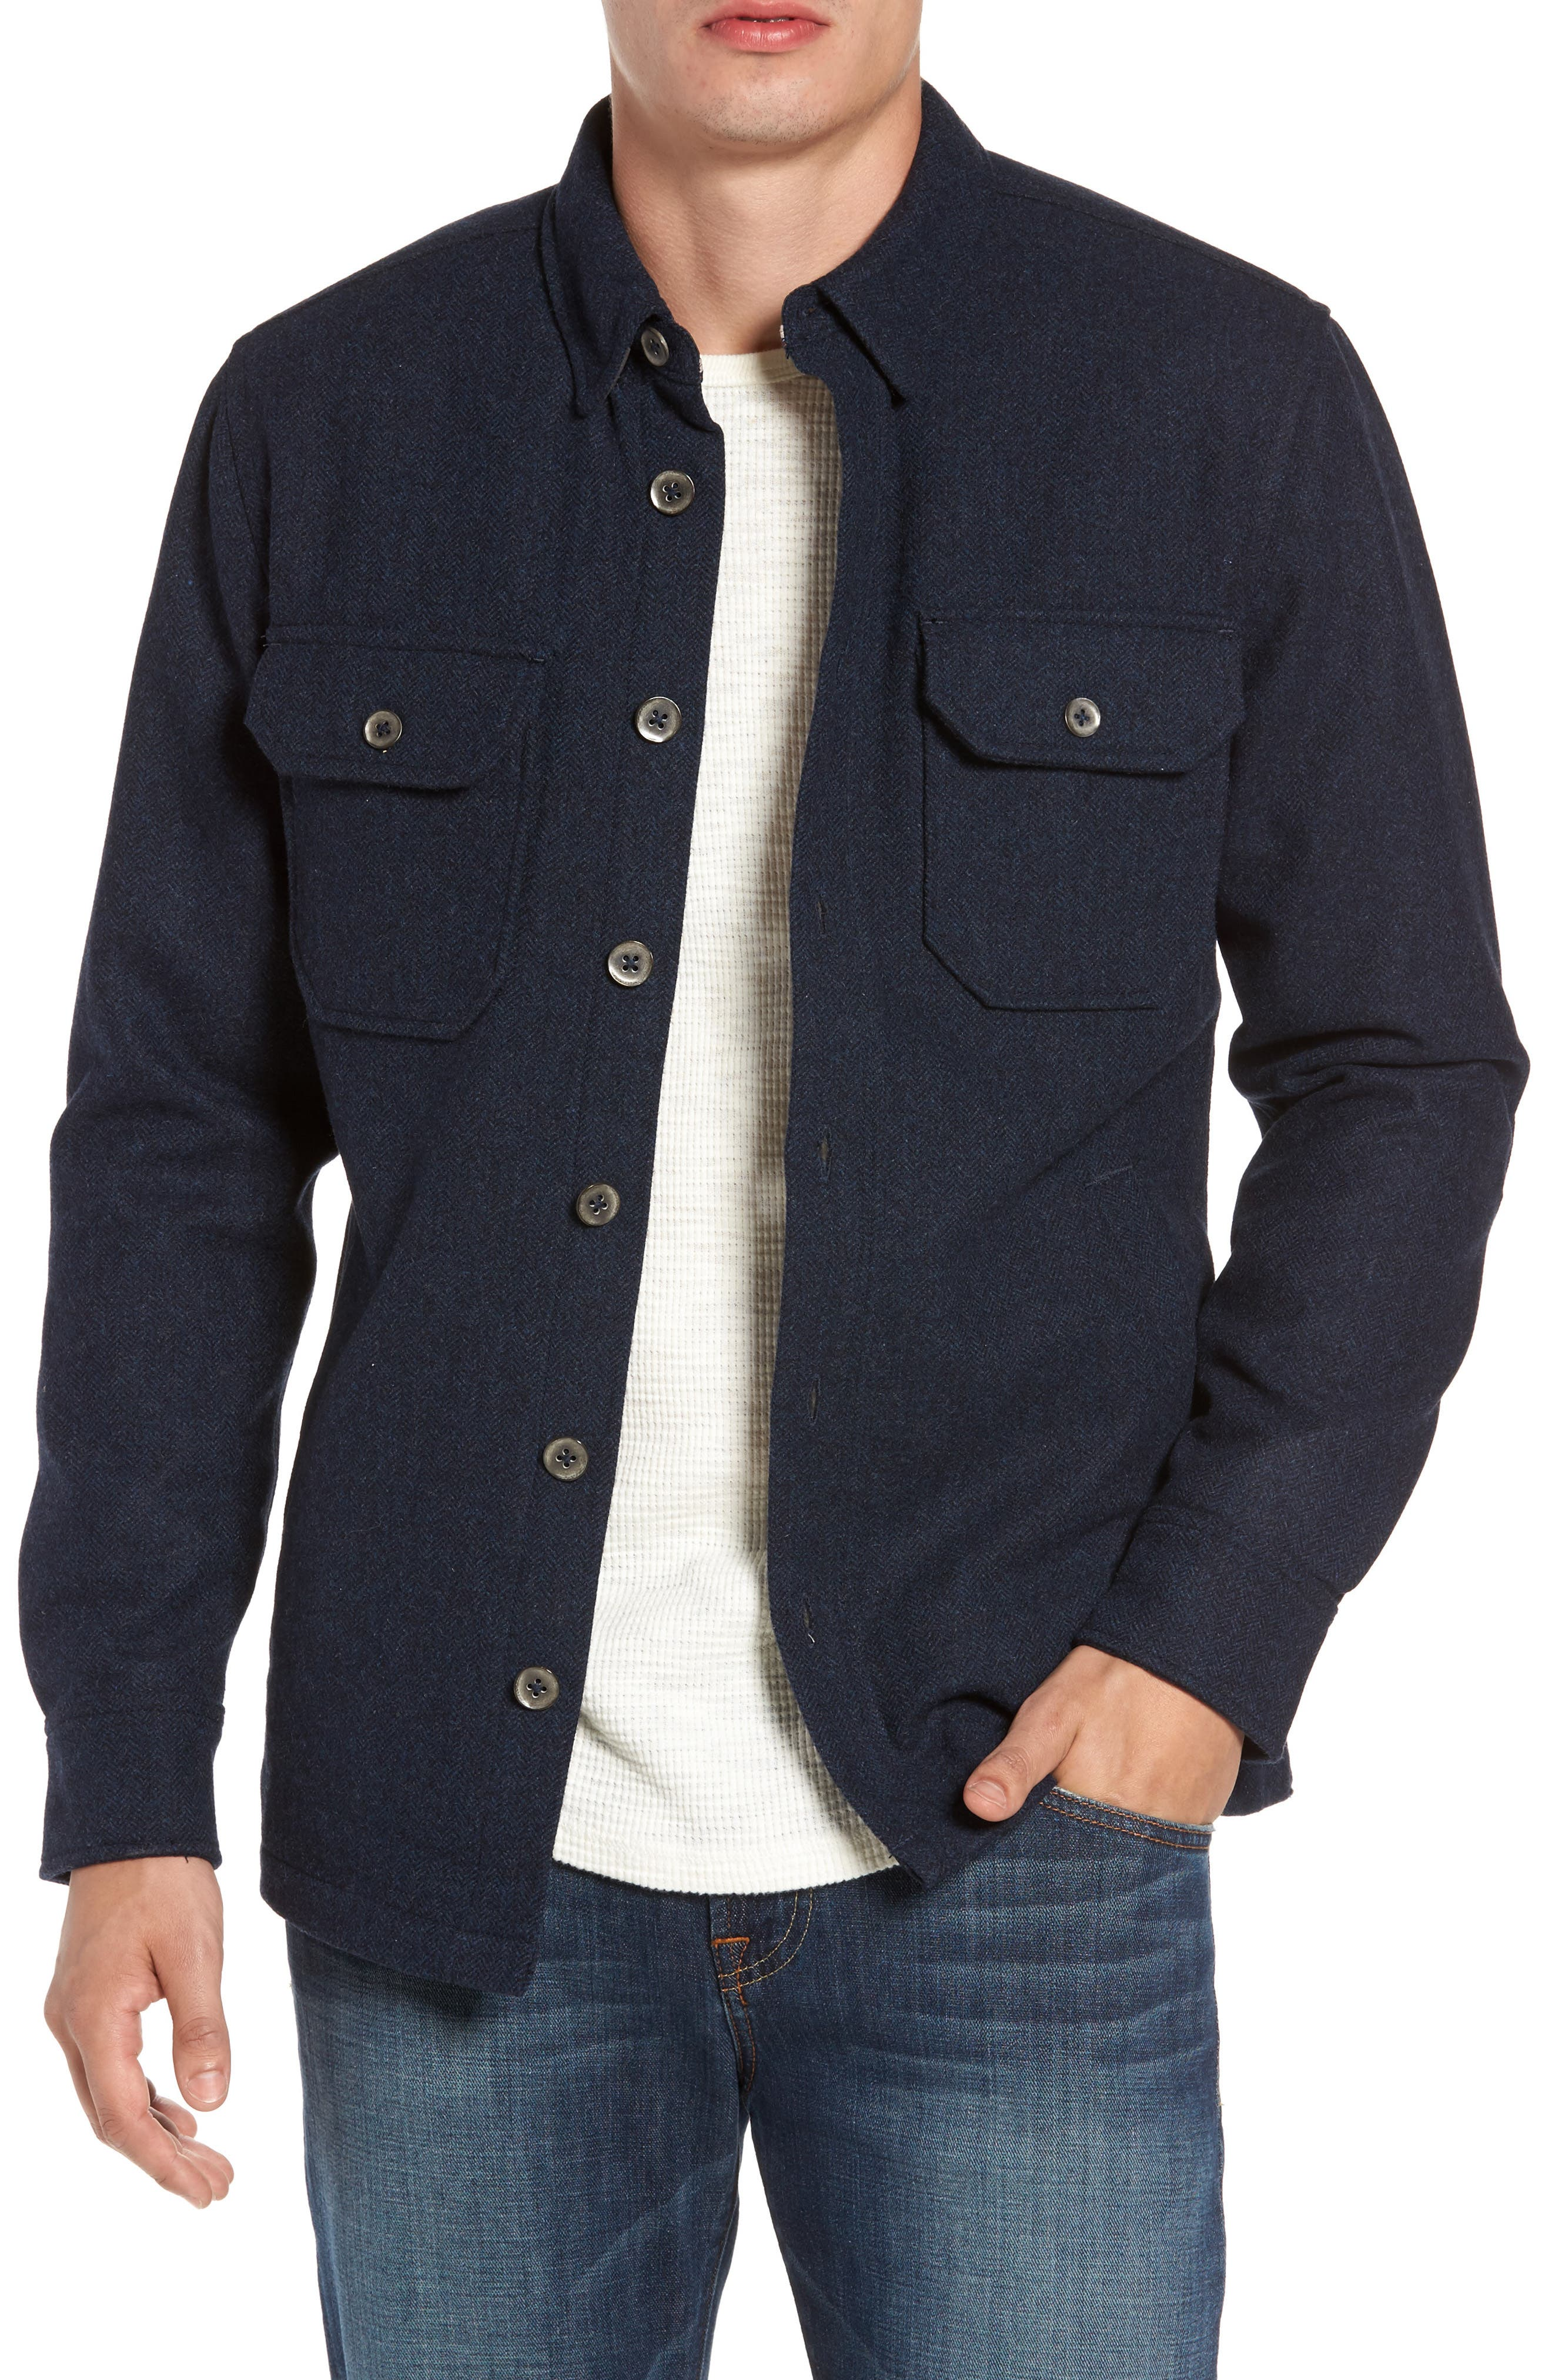 Jeremiah Creek Herringbone Wool Shirt Jacket